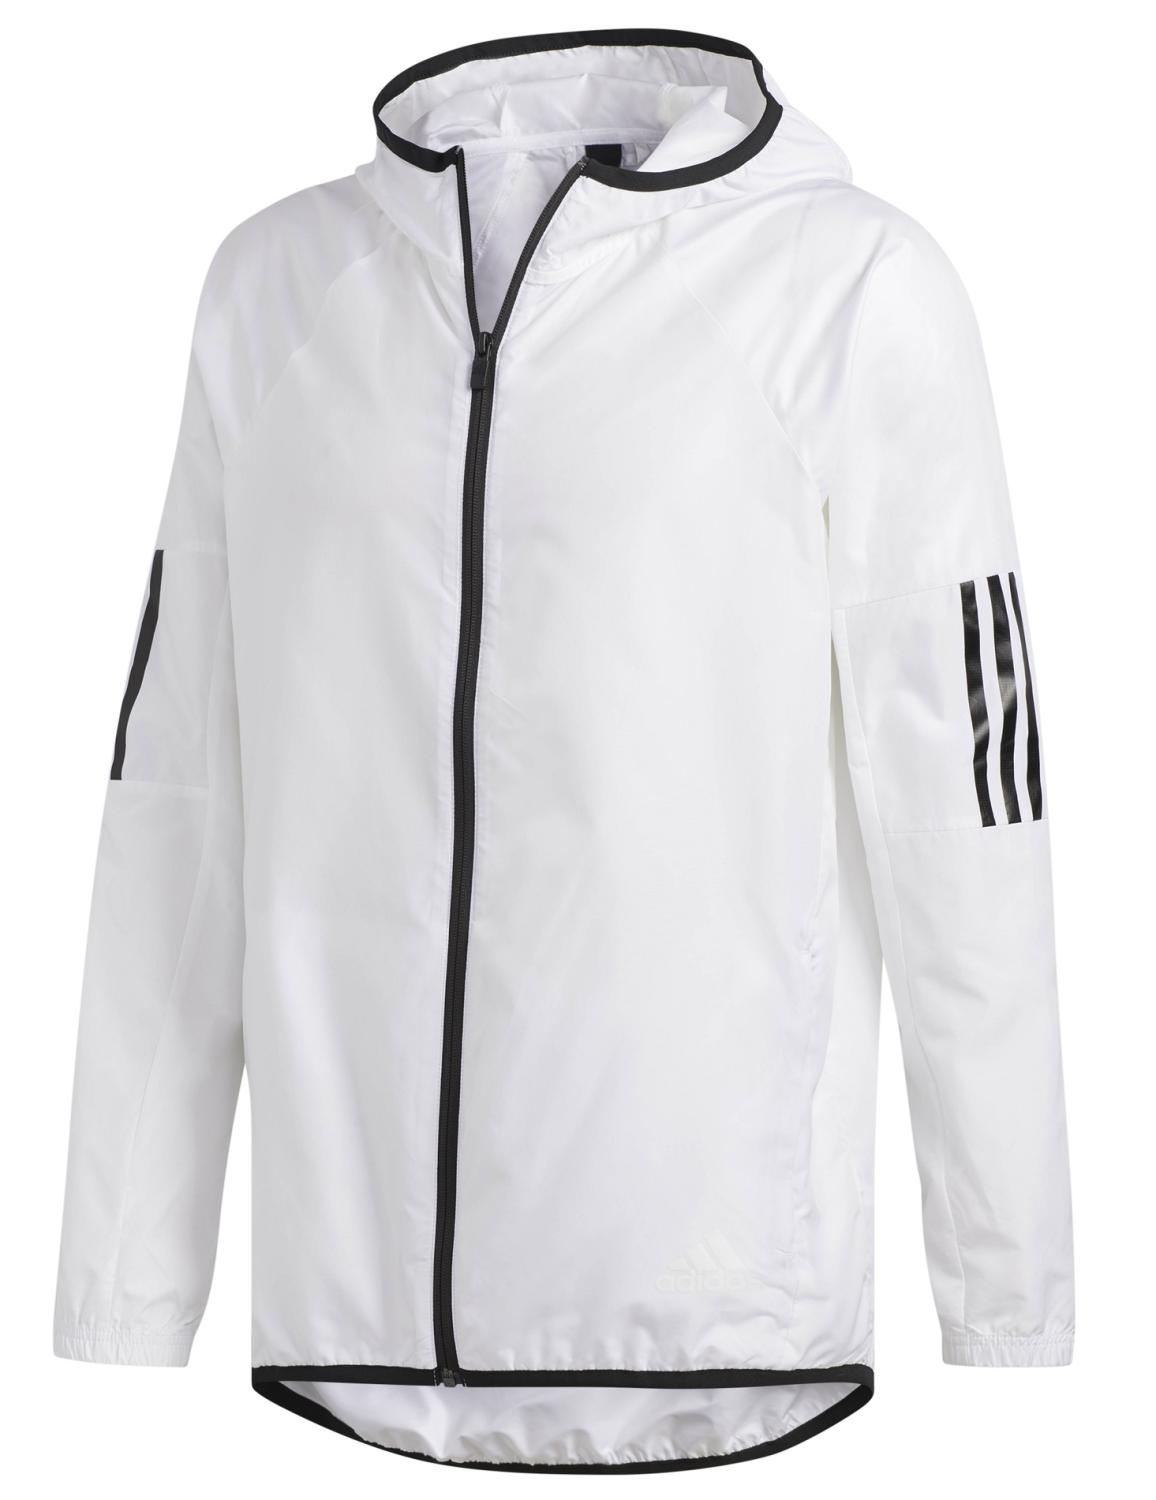 Bunda adidas Men's Windbreaker Jacket, L